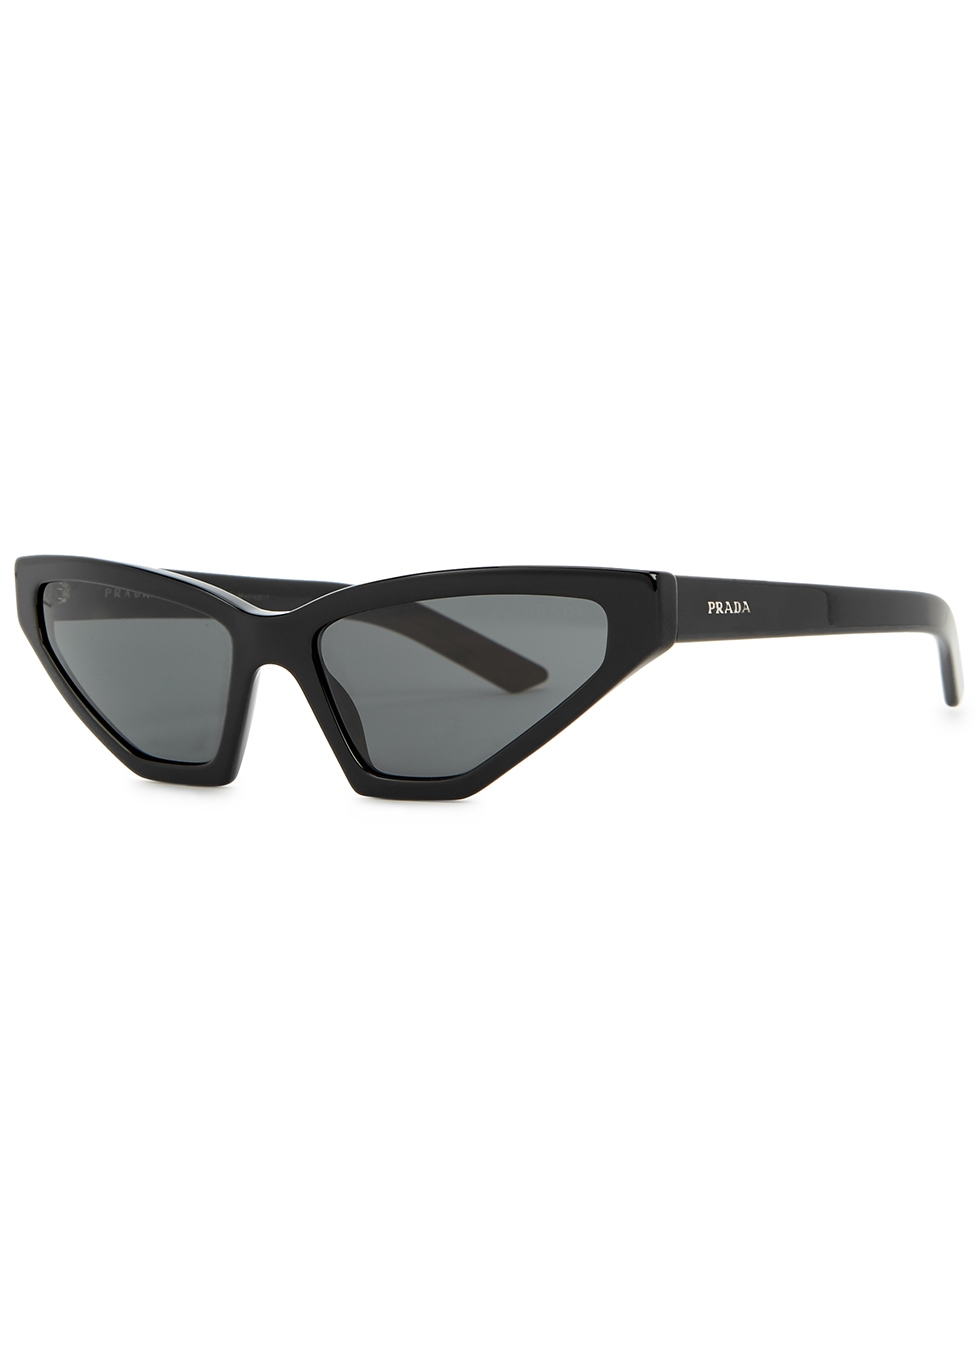 Black cat-eye sunglasses - Prada